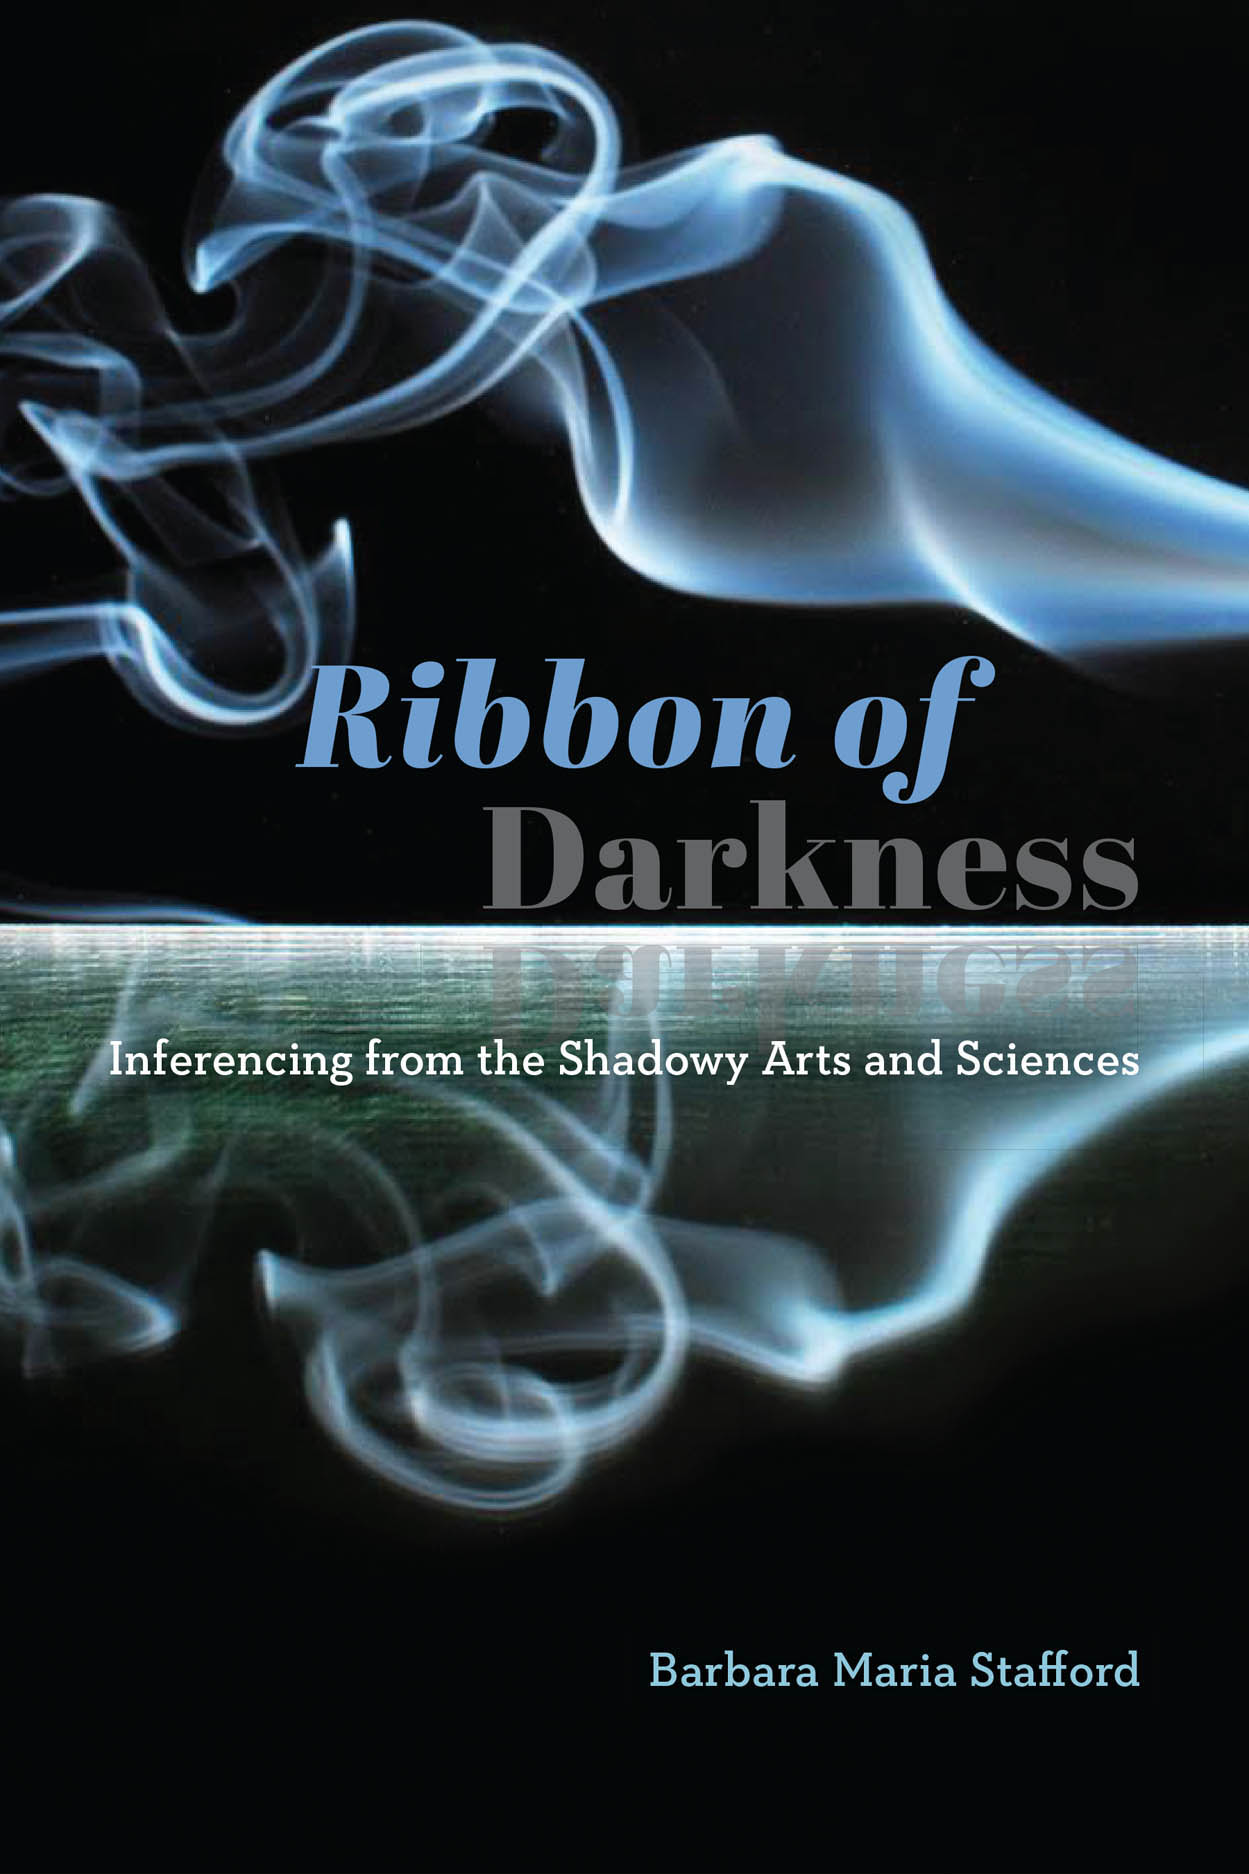 Ribbon of Darkness: Inferencing from the Shadowy Arts and Sciences